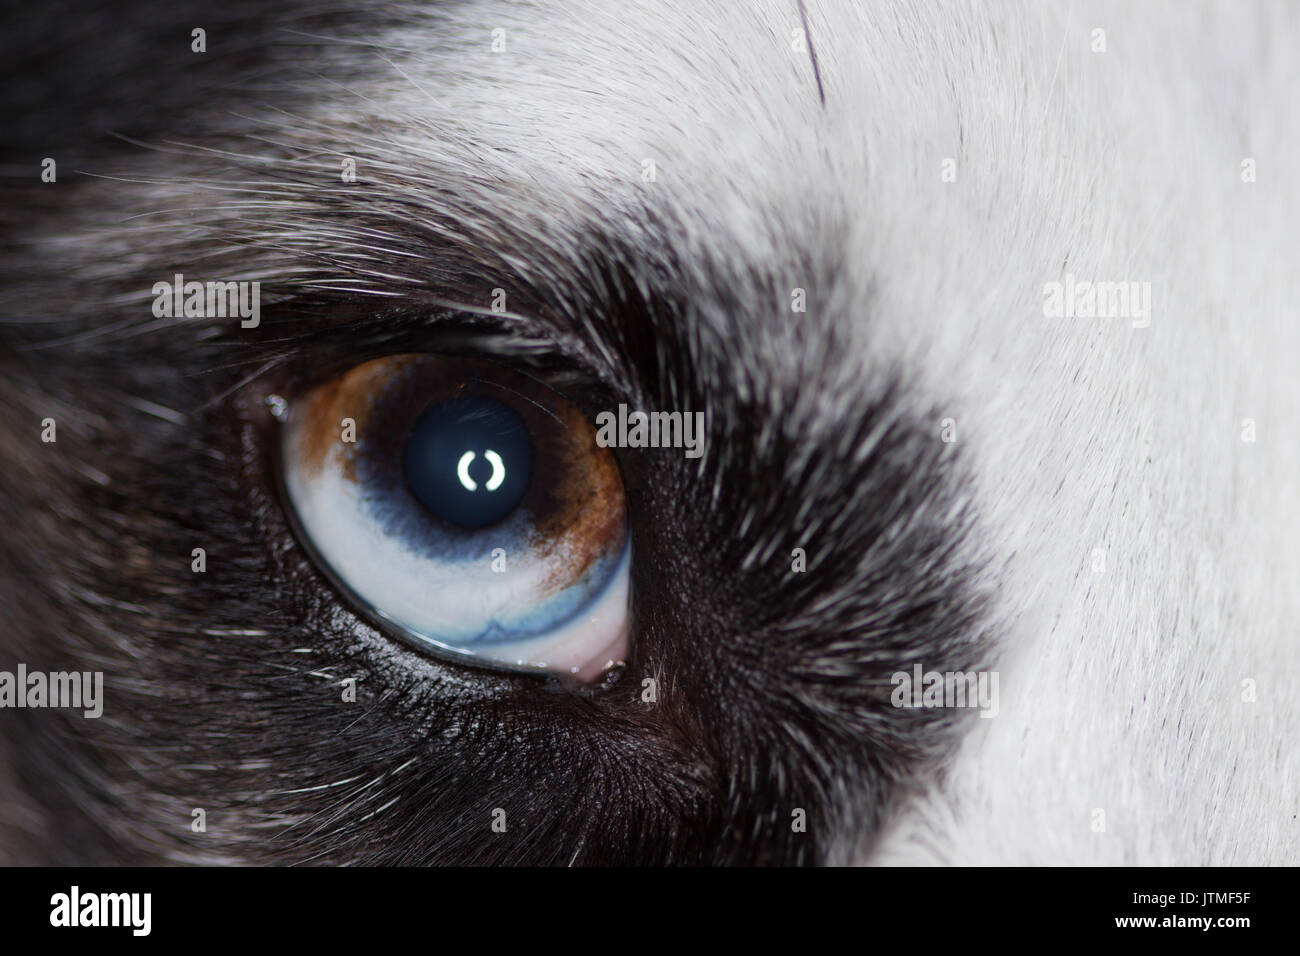 Collie sheep dog eye - Stock Image